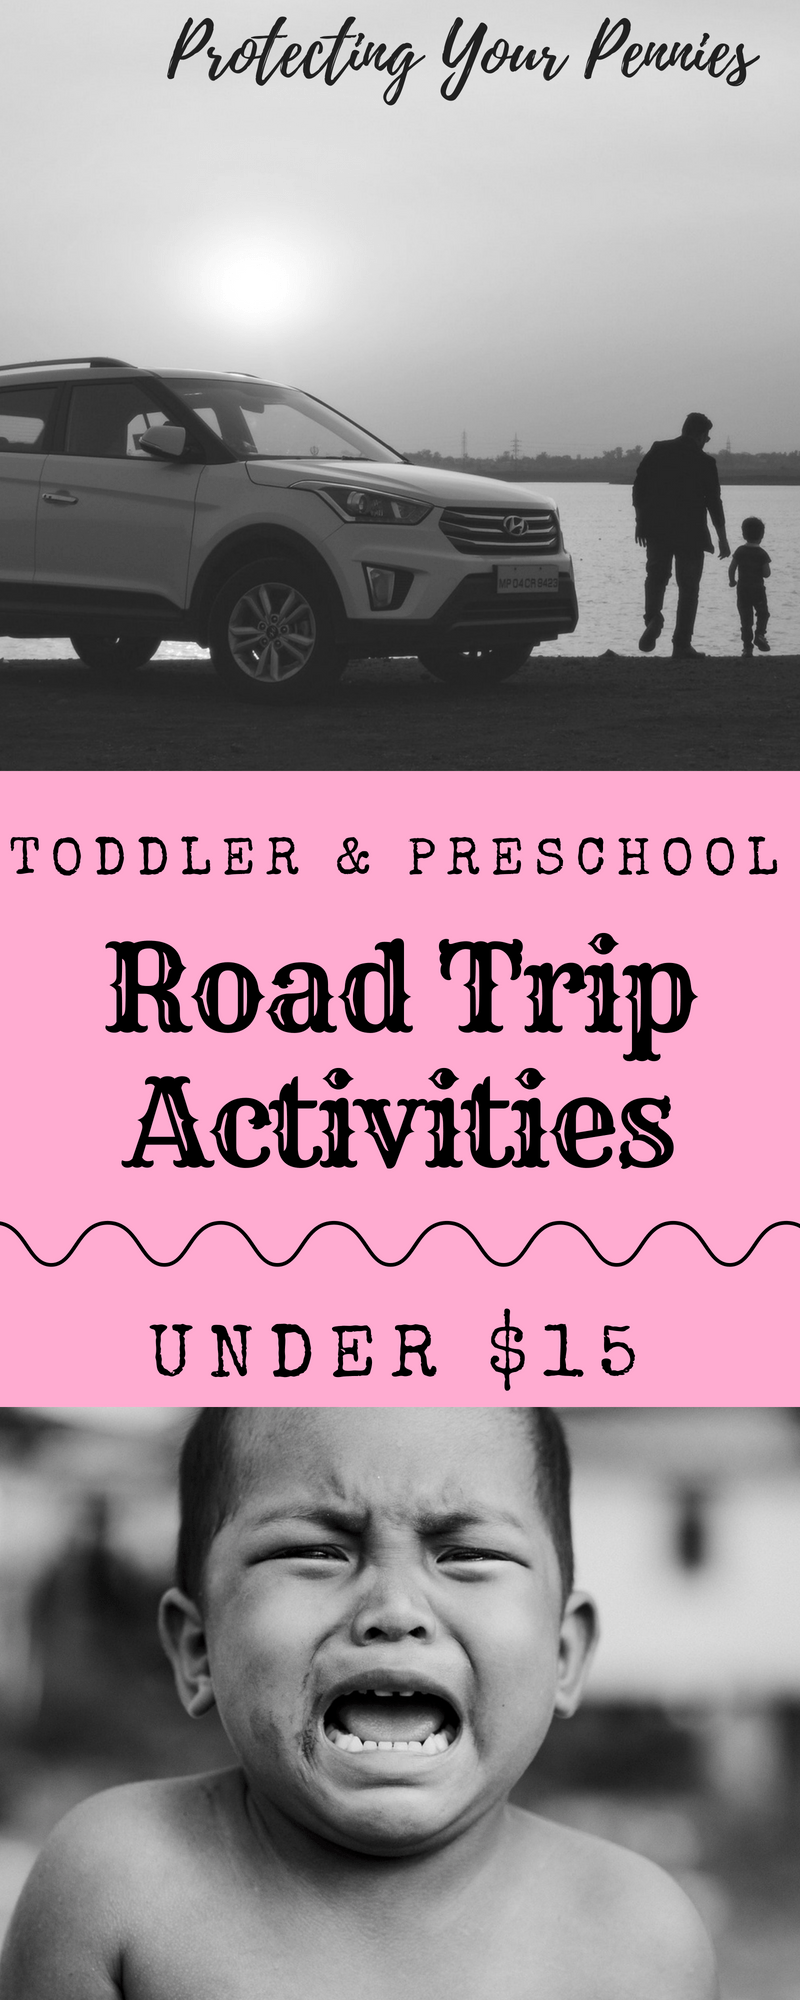 Toddler & Preschool Road Trip Activities Under $15